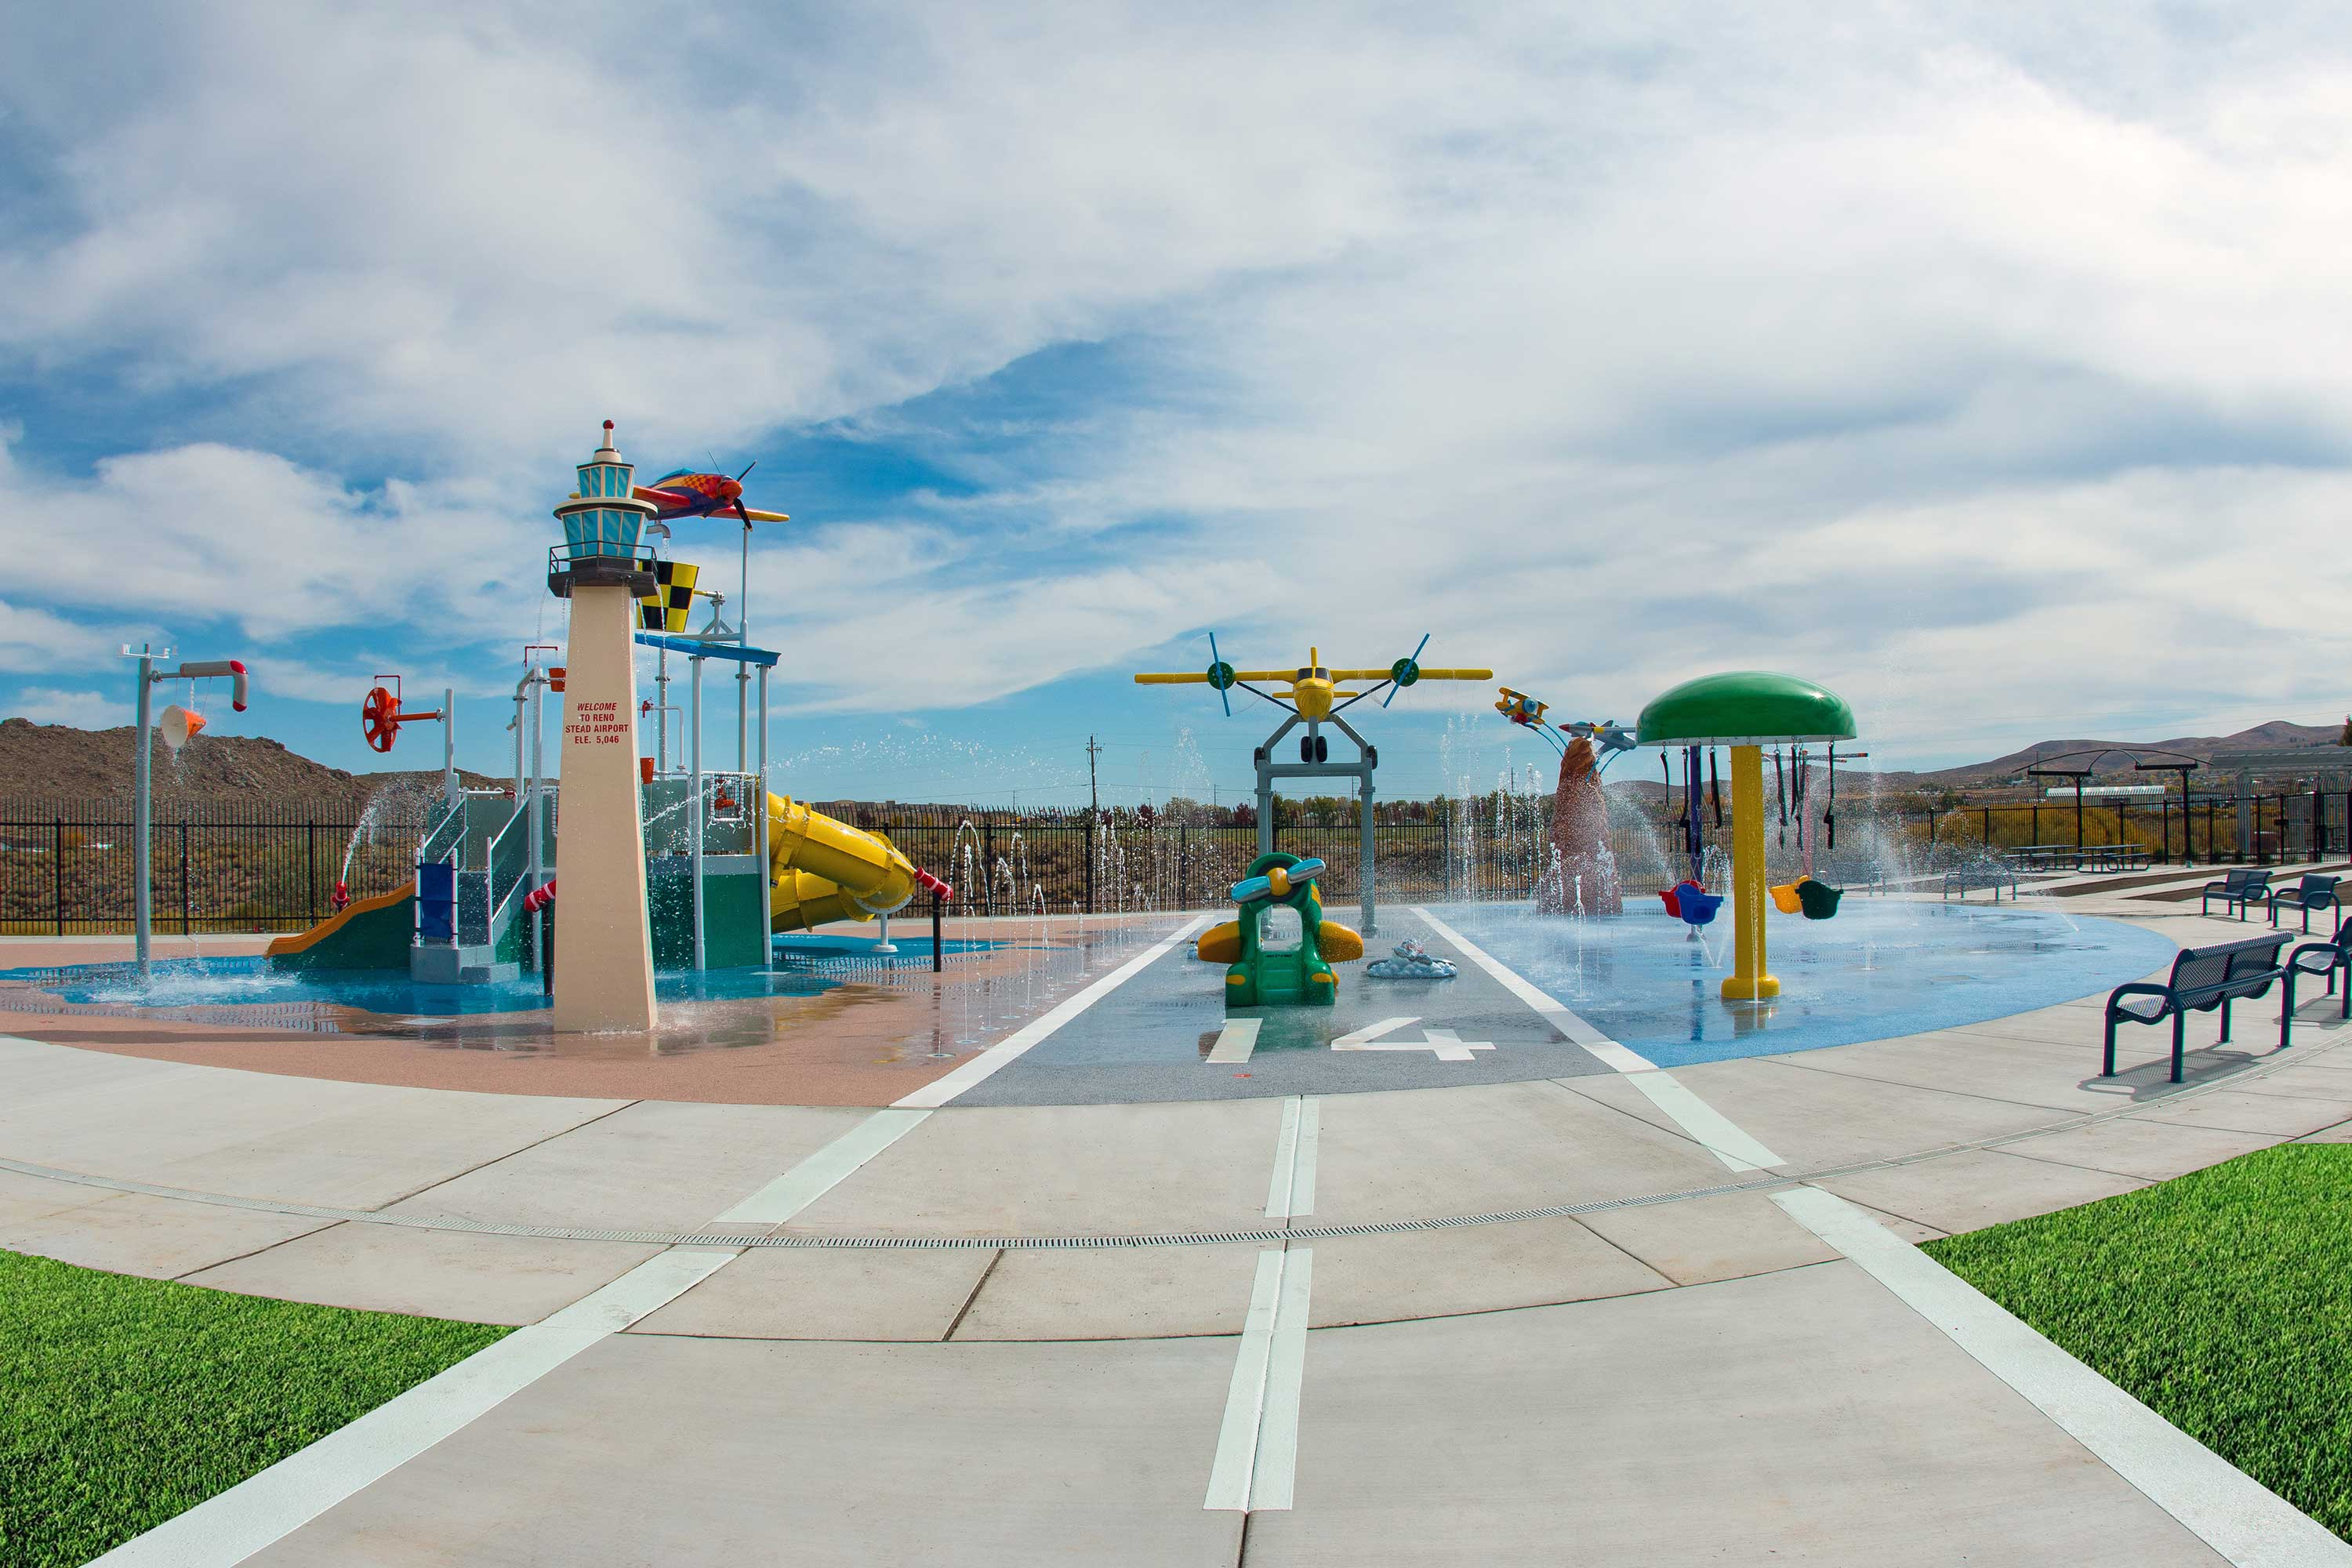 North Valleys Water Park